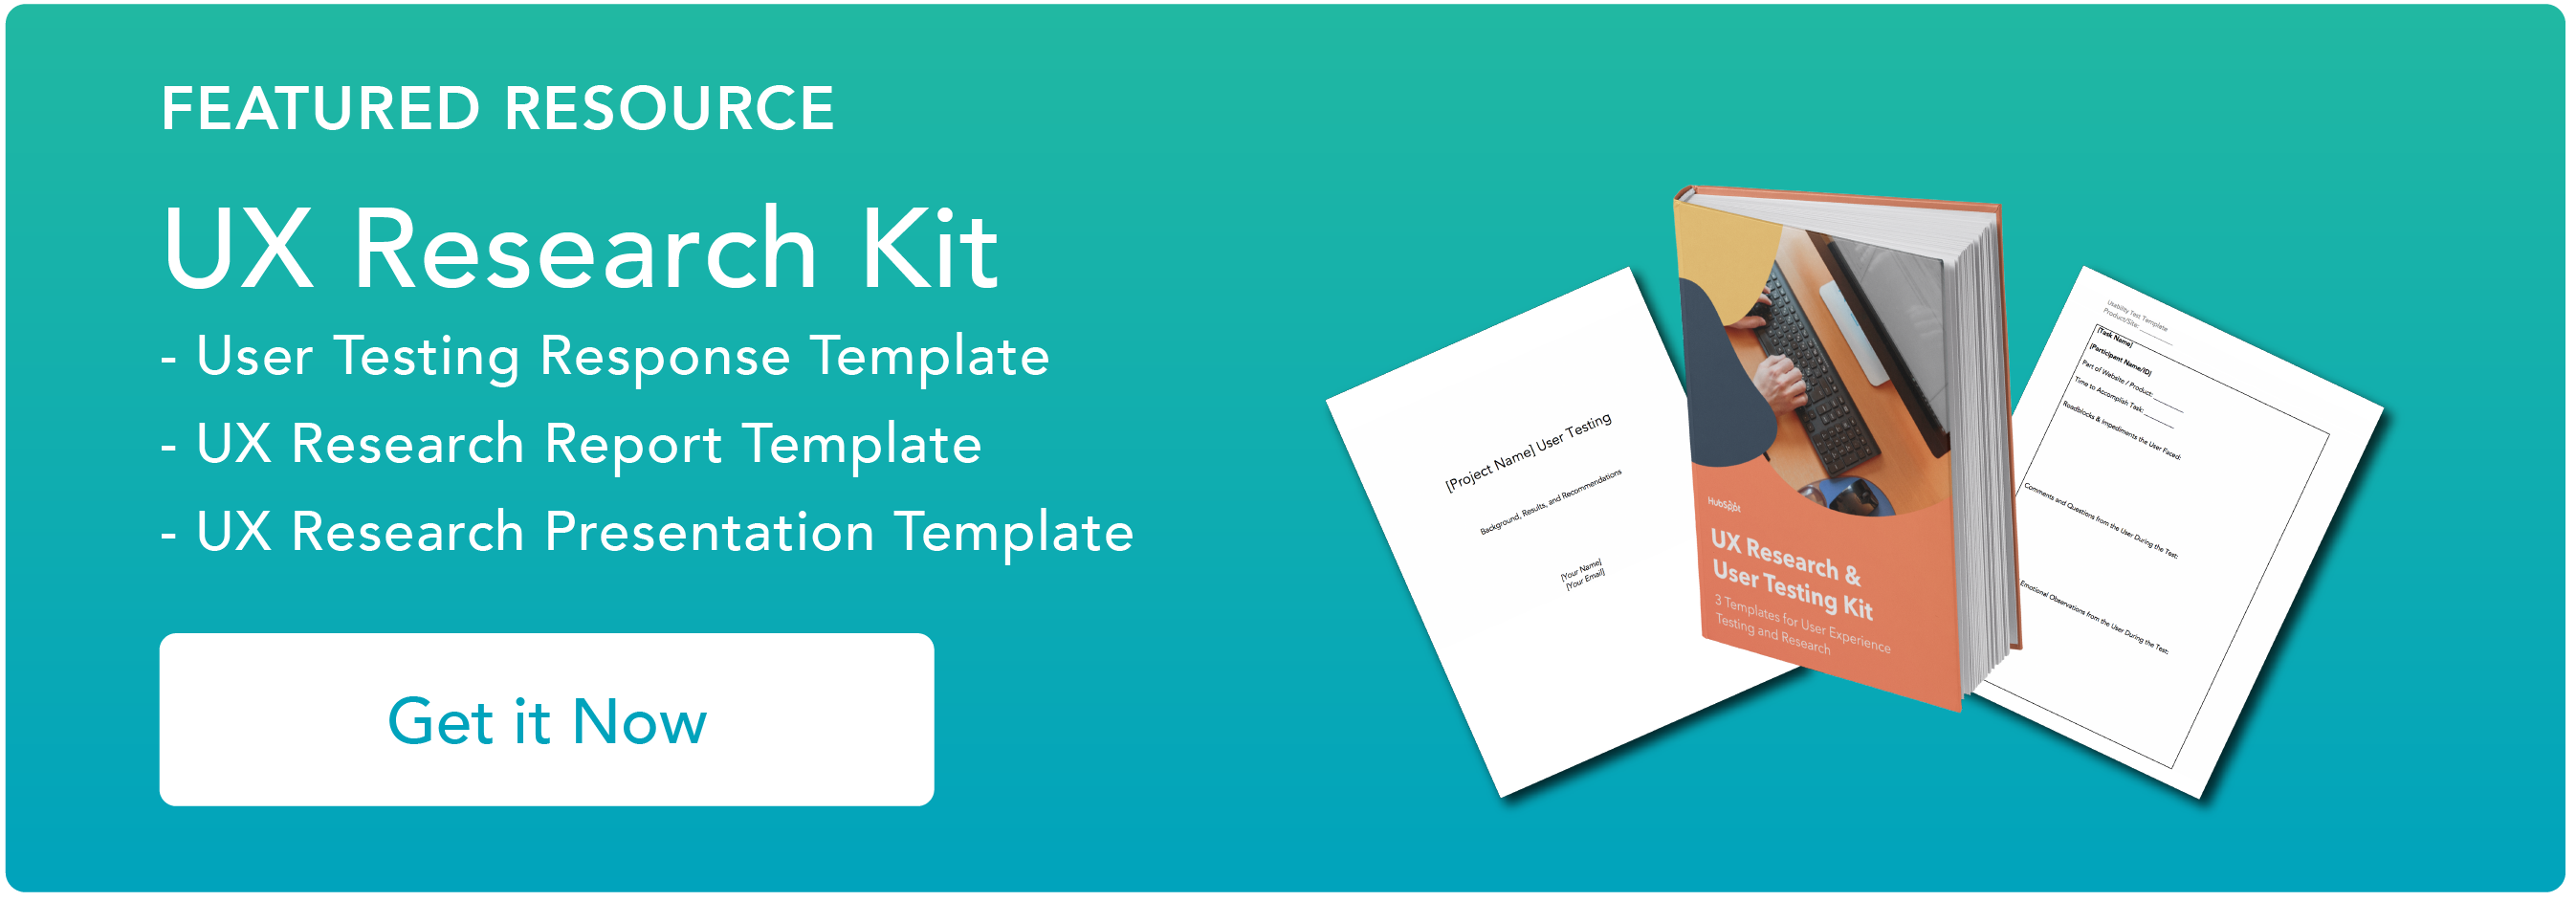 ux templates